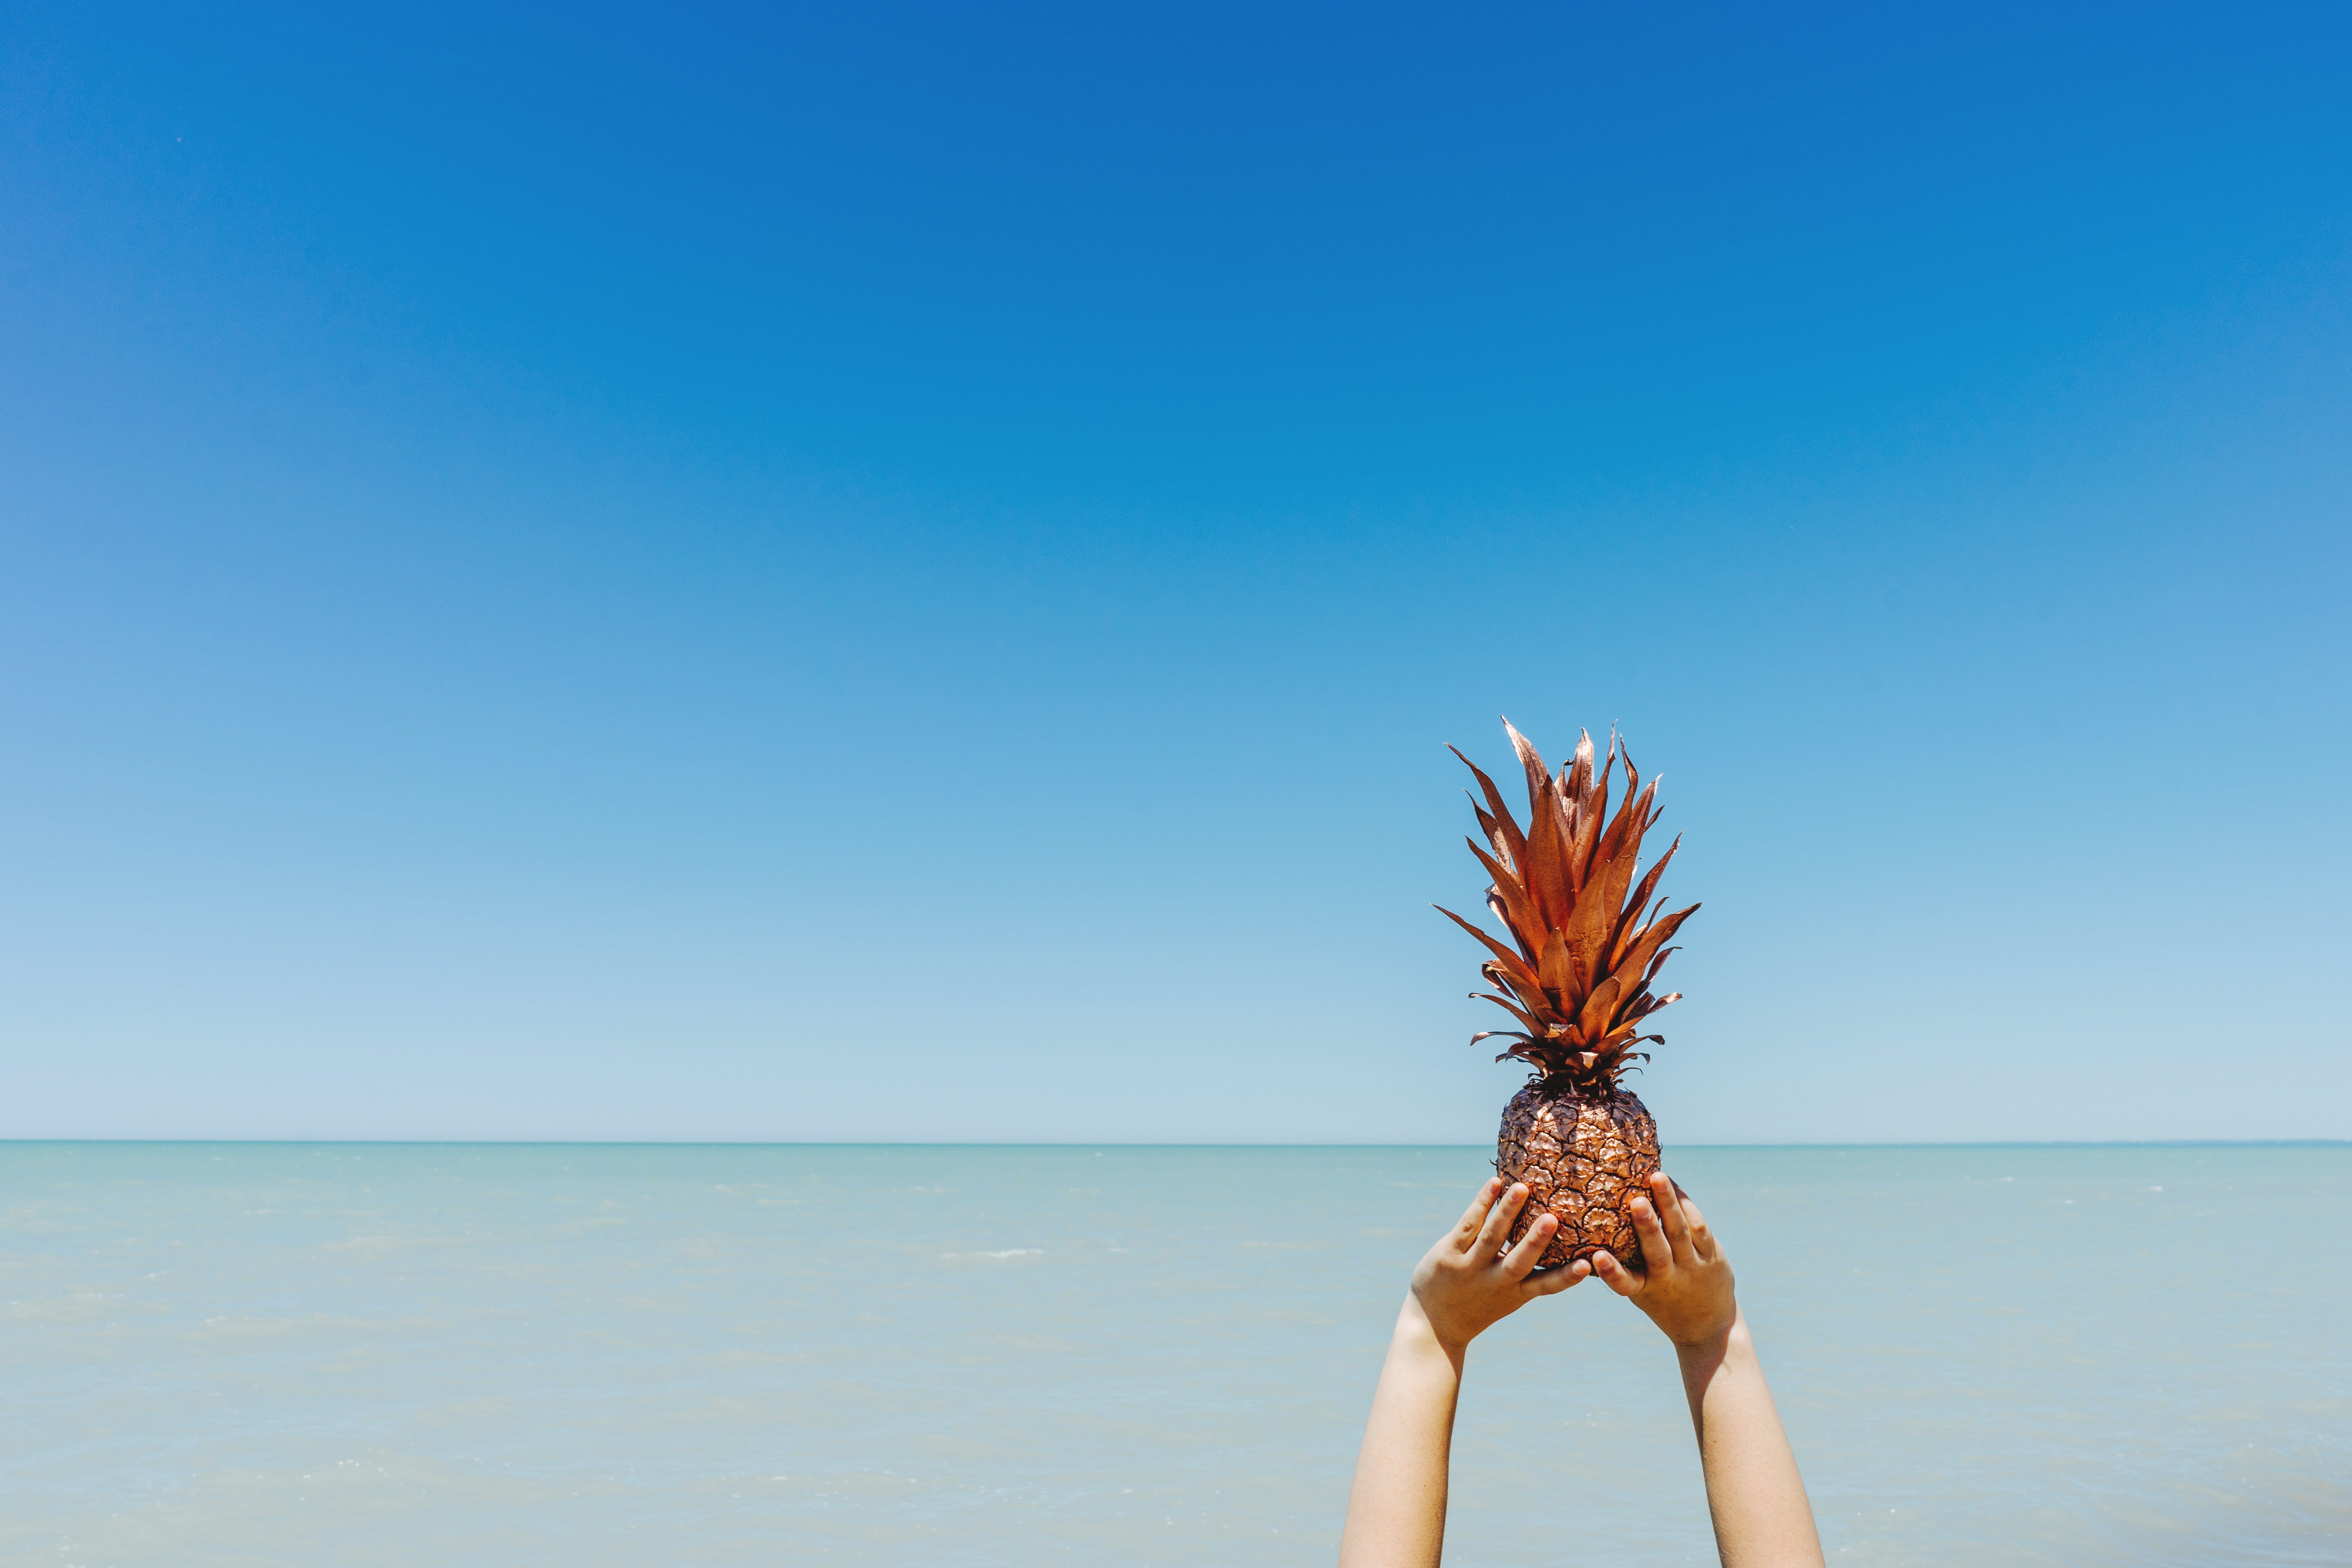 Person Holding Lifted Pineapple Fruit